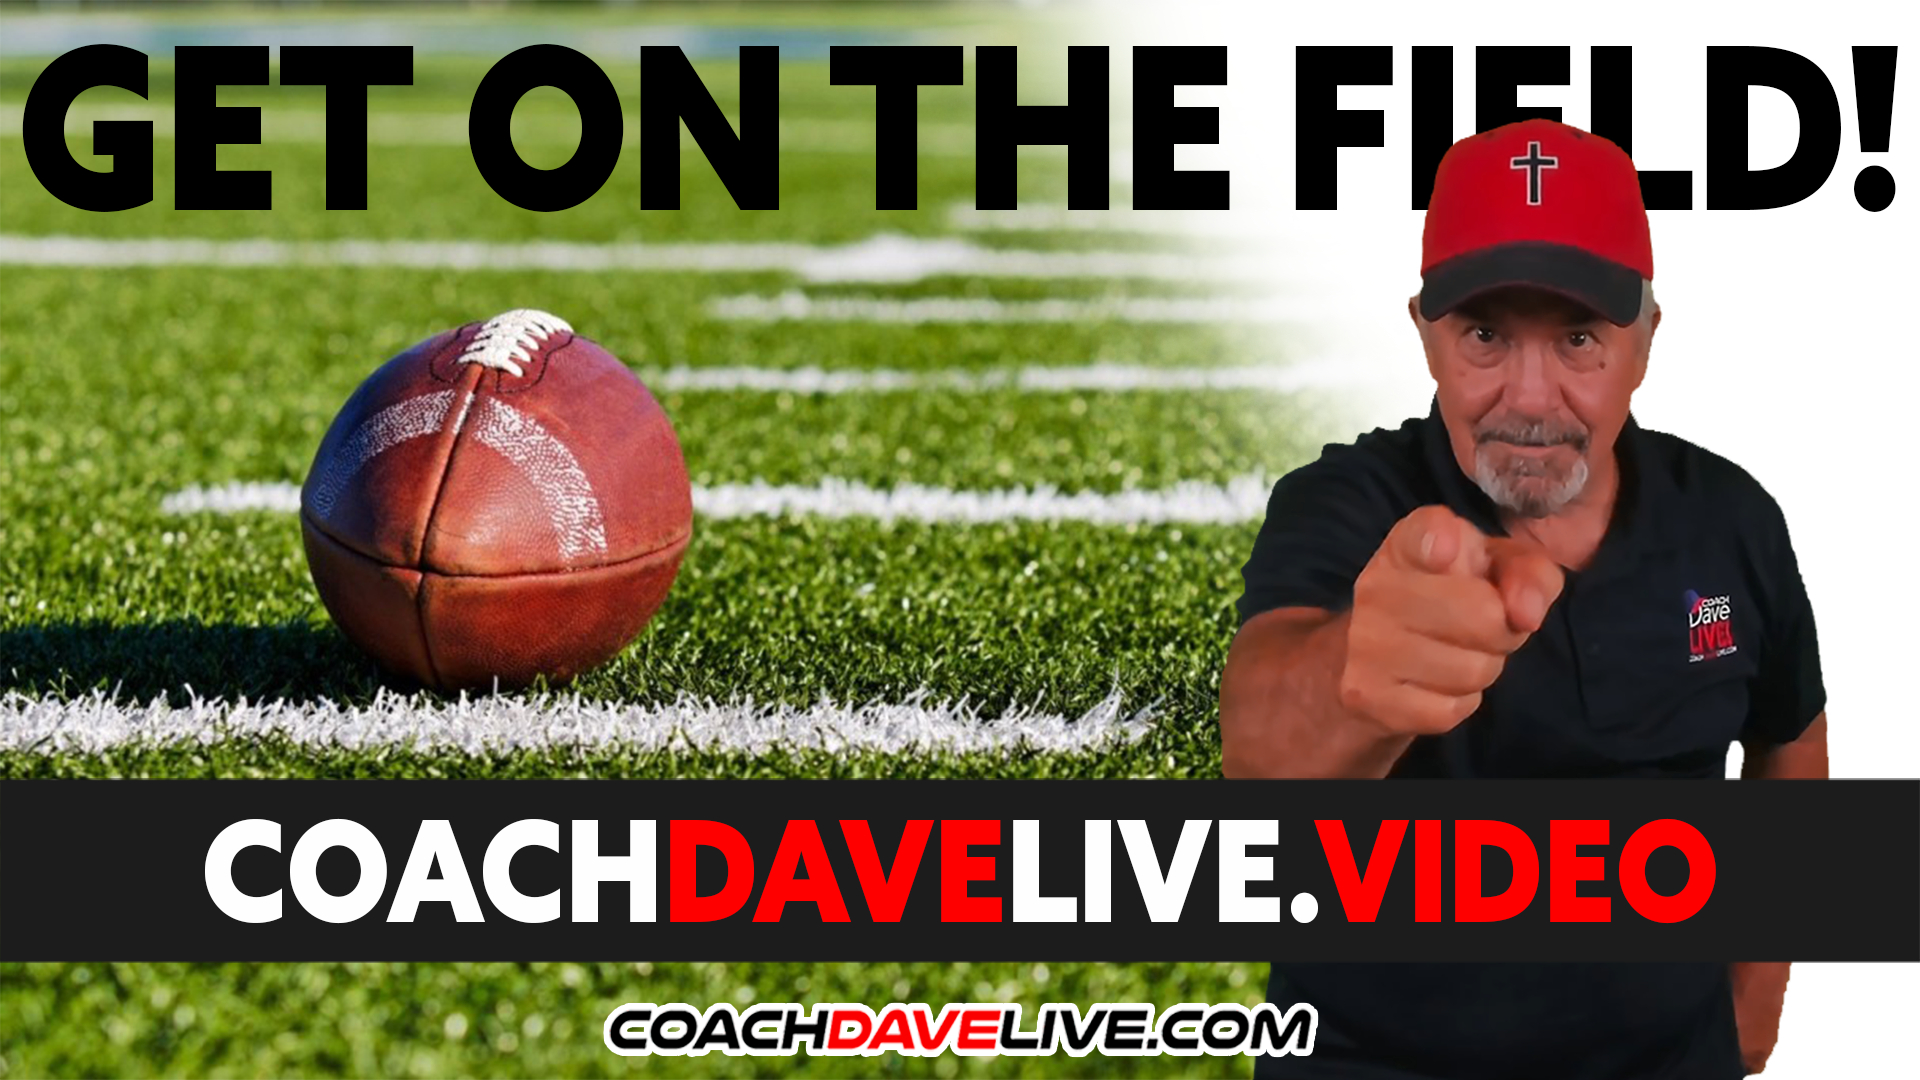 Coach Dave LIVE | 10-6-2021 | GET ON THE FIELD!